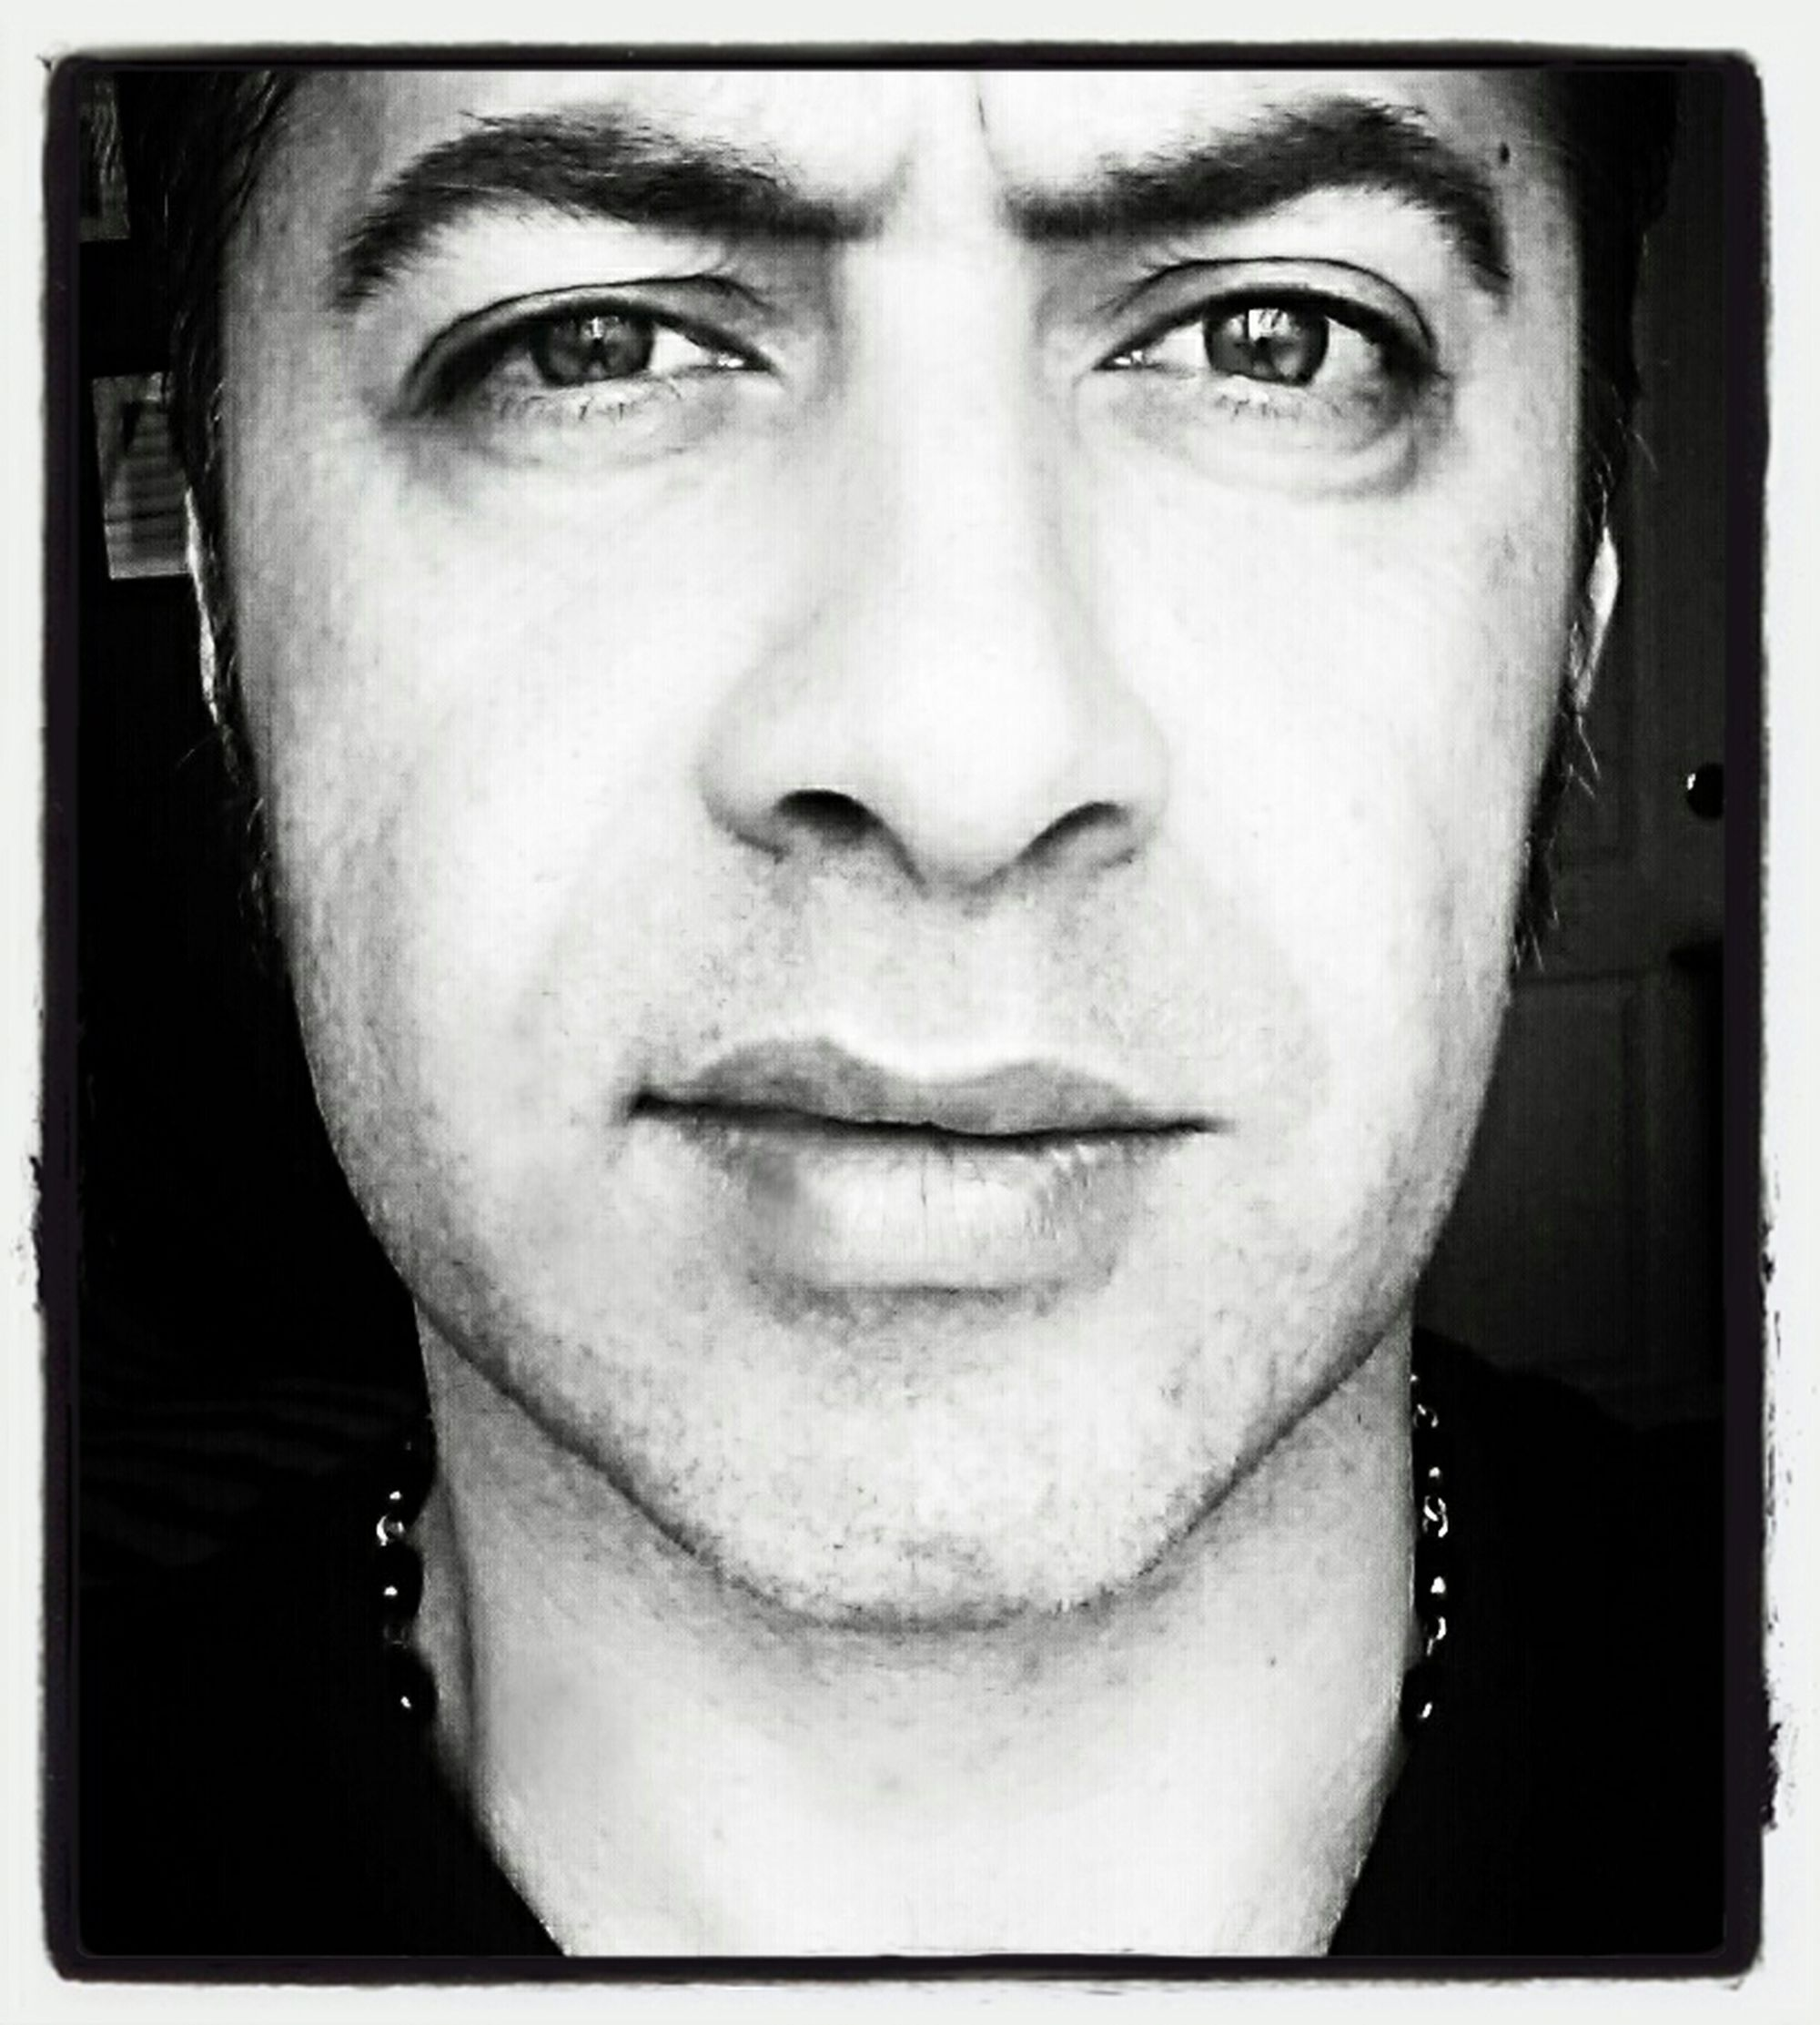 Oh yeah, this is me! Portrait Black & White Selfie That's Me